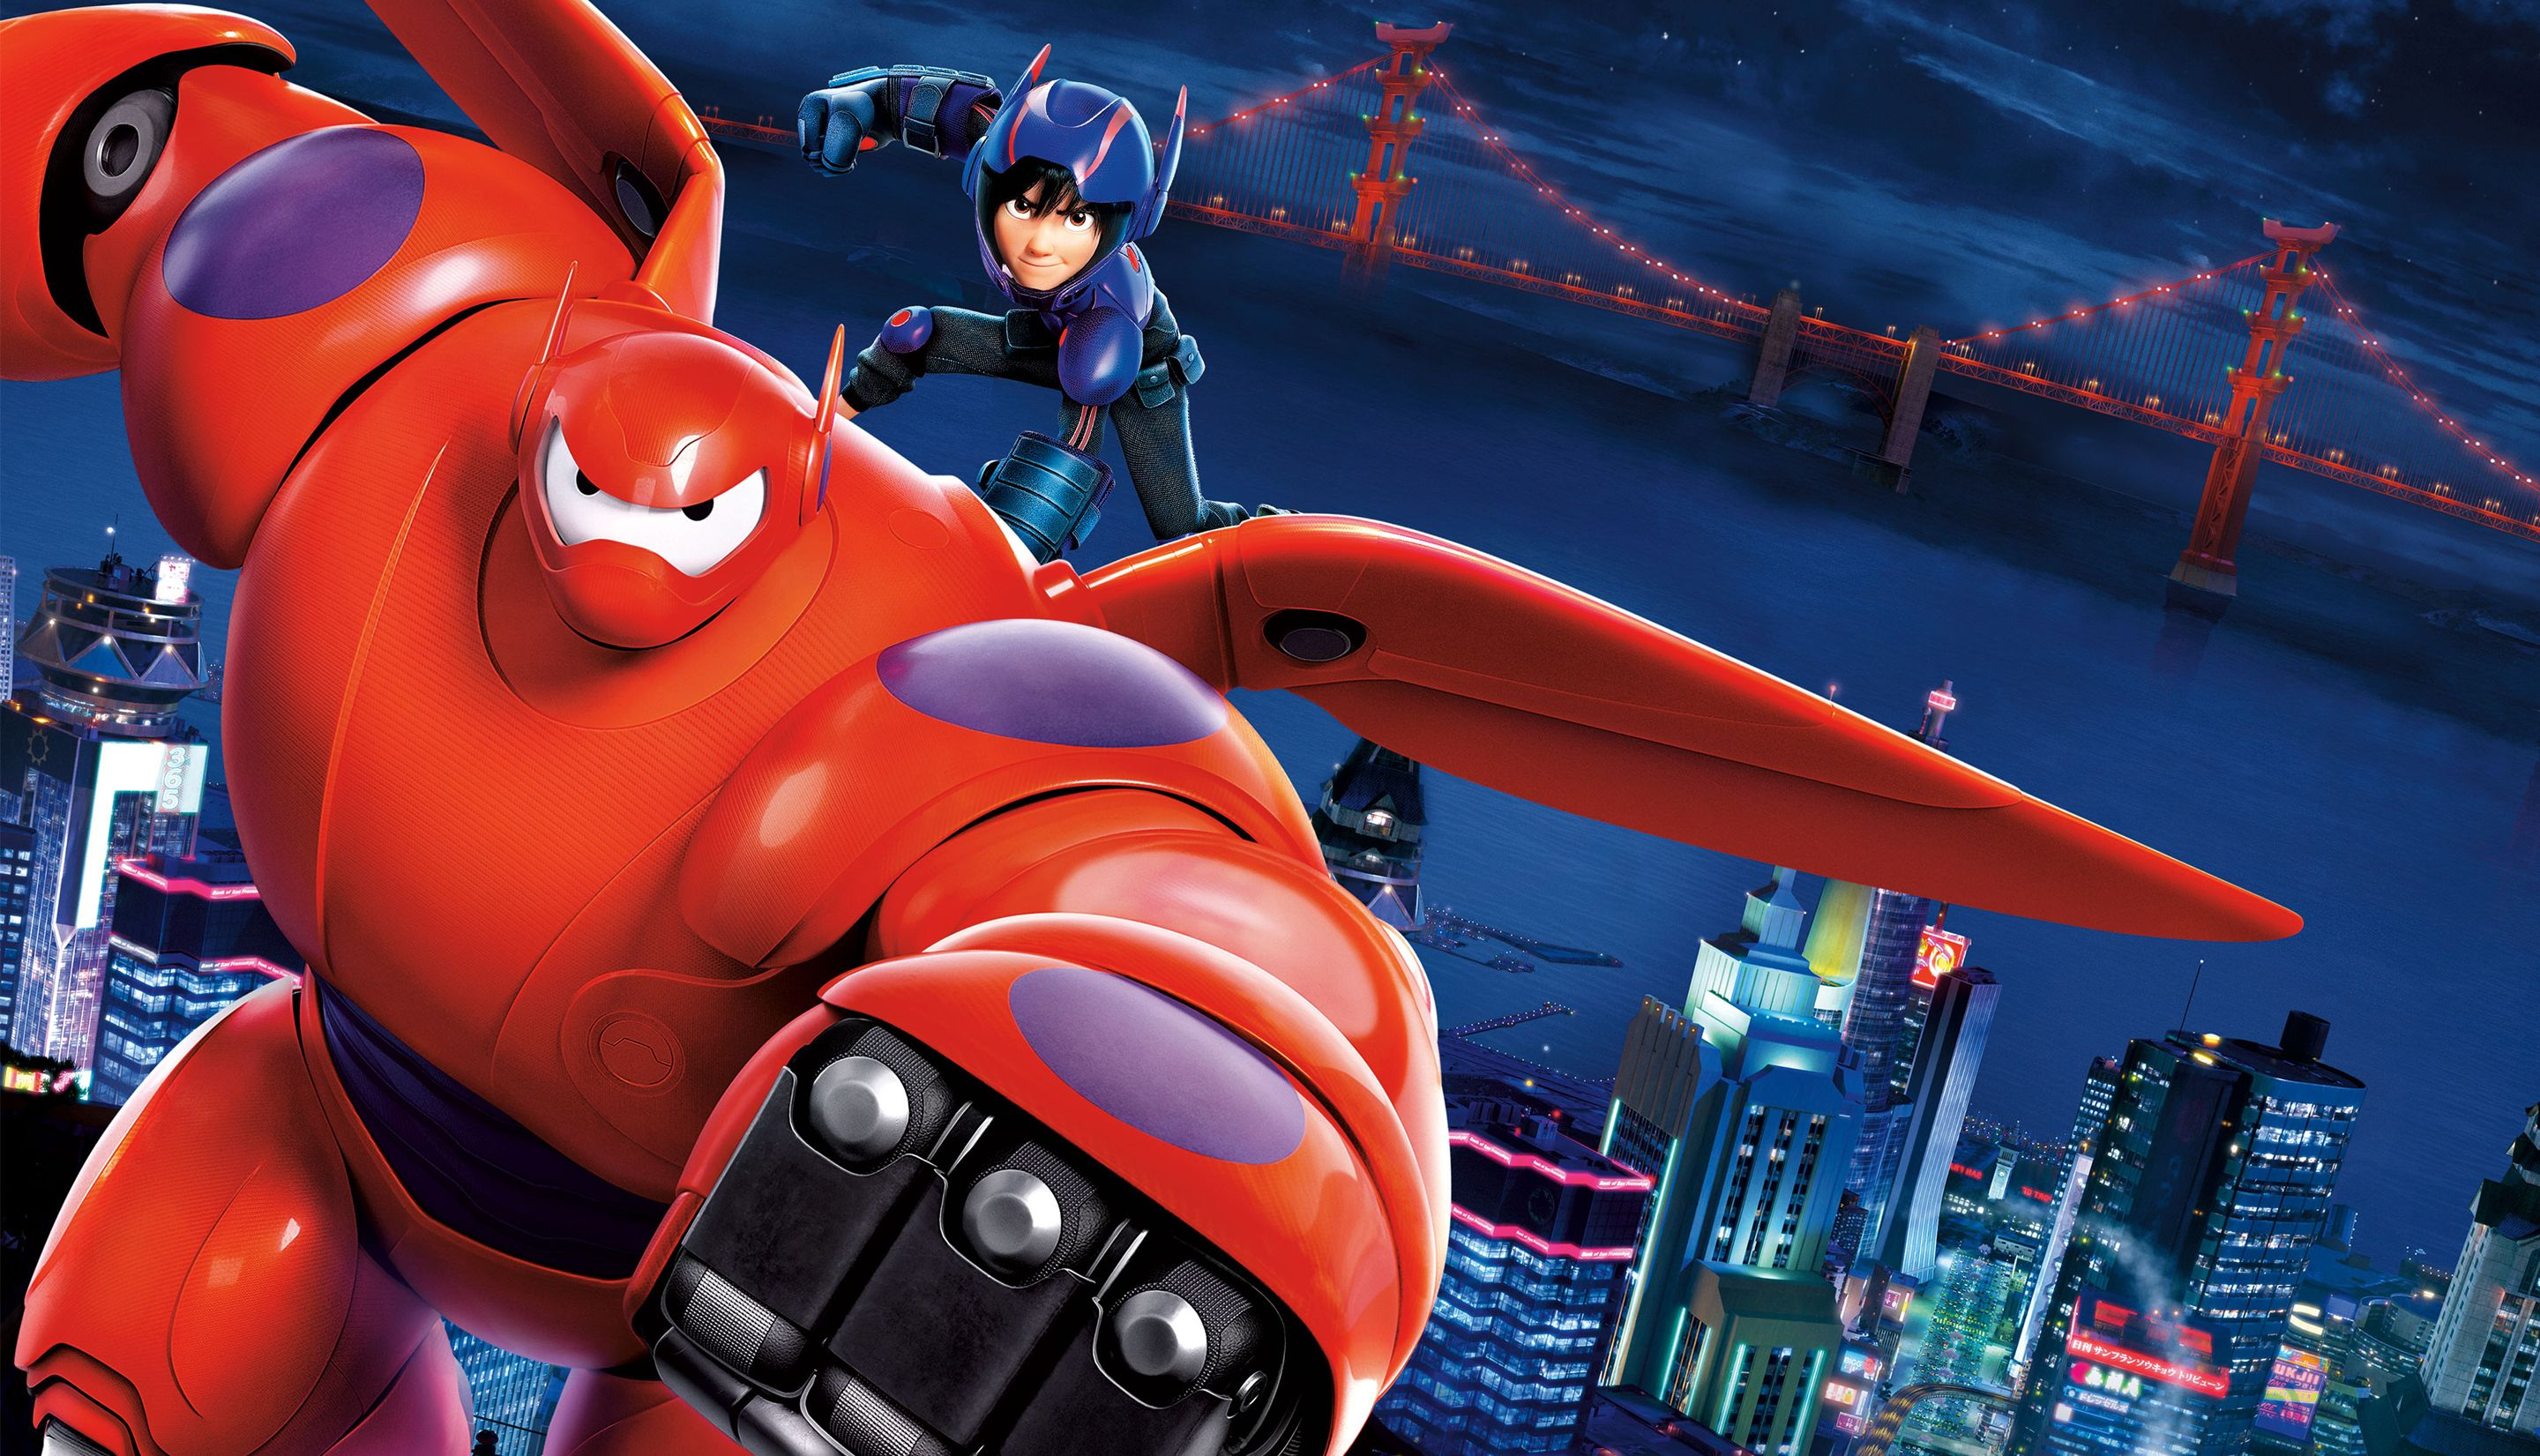 Hiro and Baymax fly